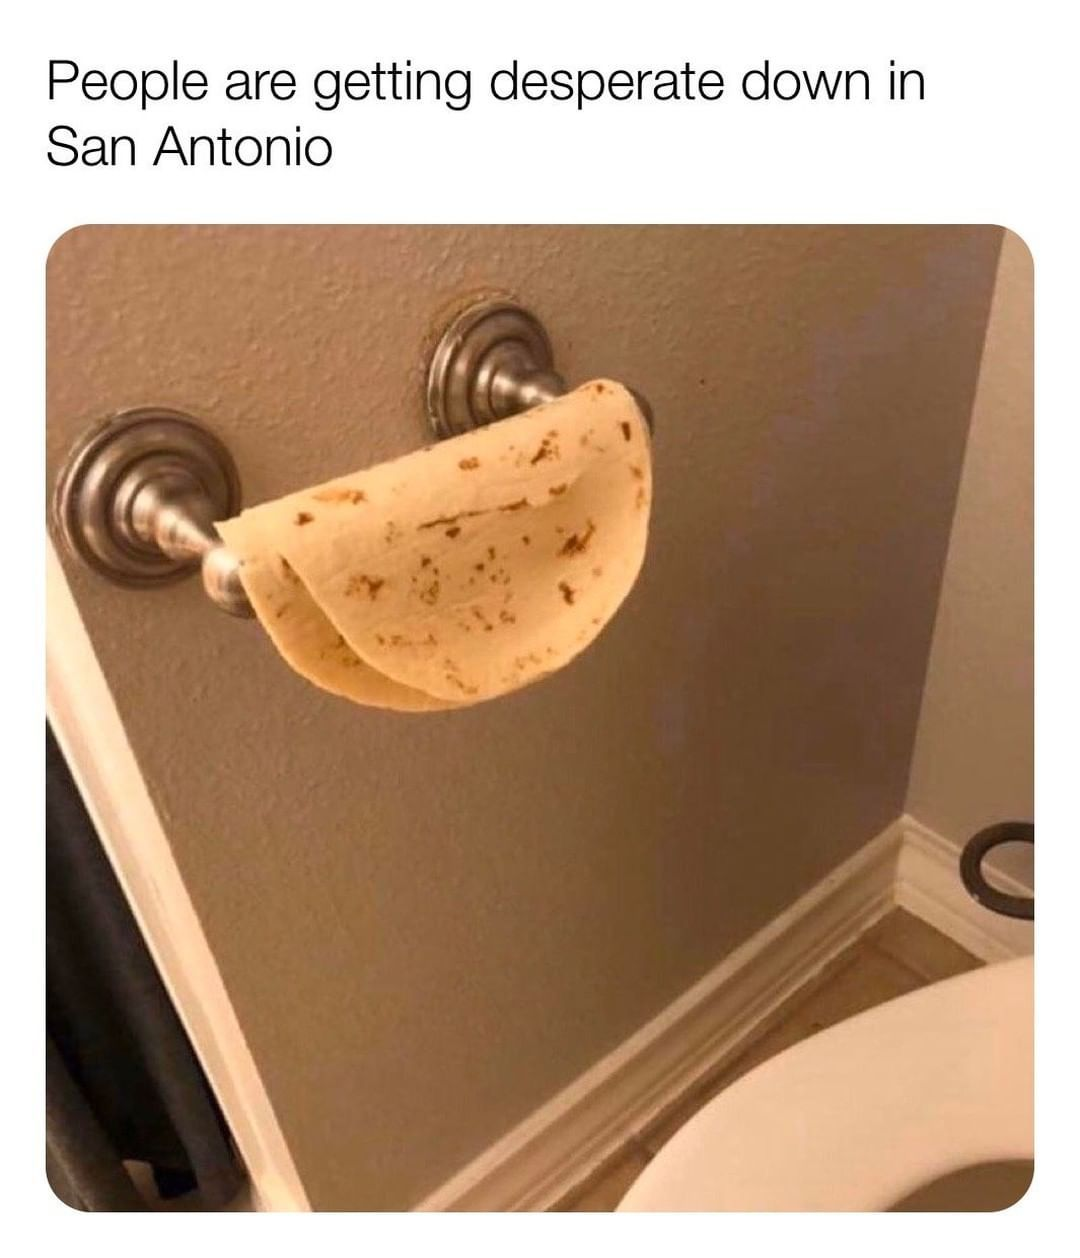 Texas Humor On Instagram Would Y All Go With Corn Or Flour In 2020 Brighten Your Day Texas Humor Jokes Pics